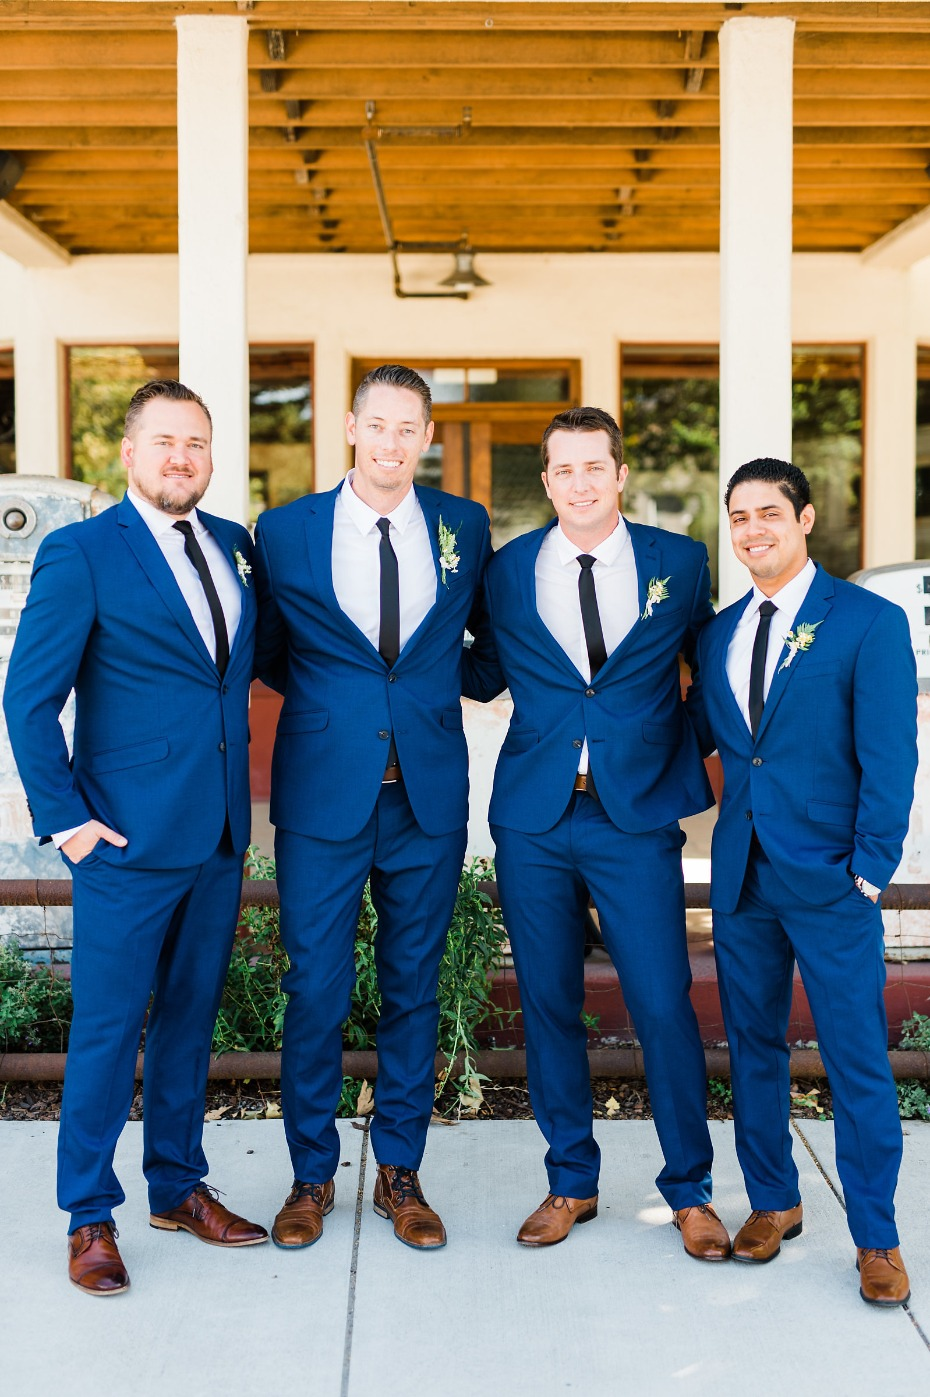 Groom and his men in navy suits